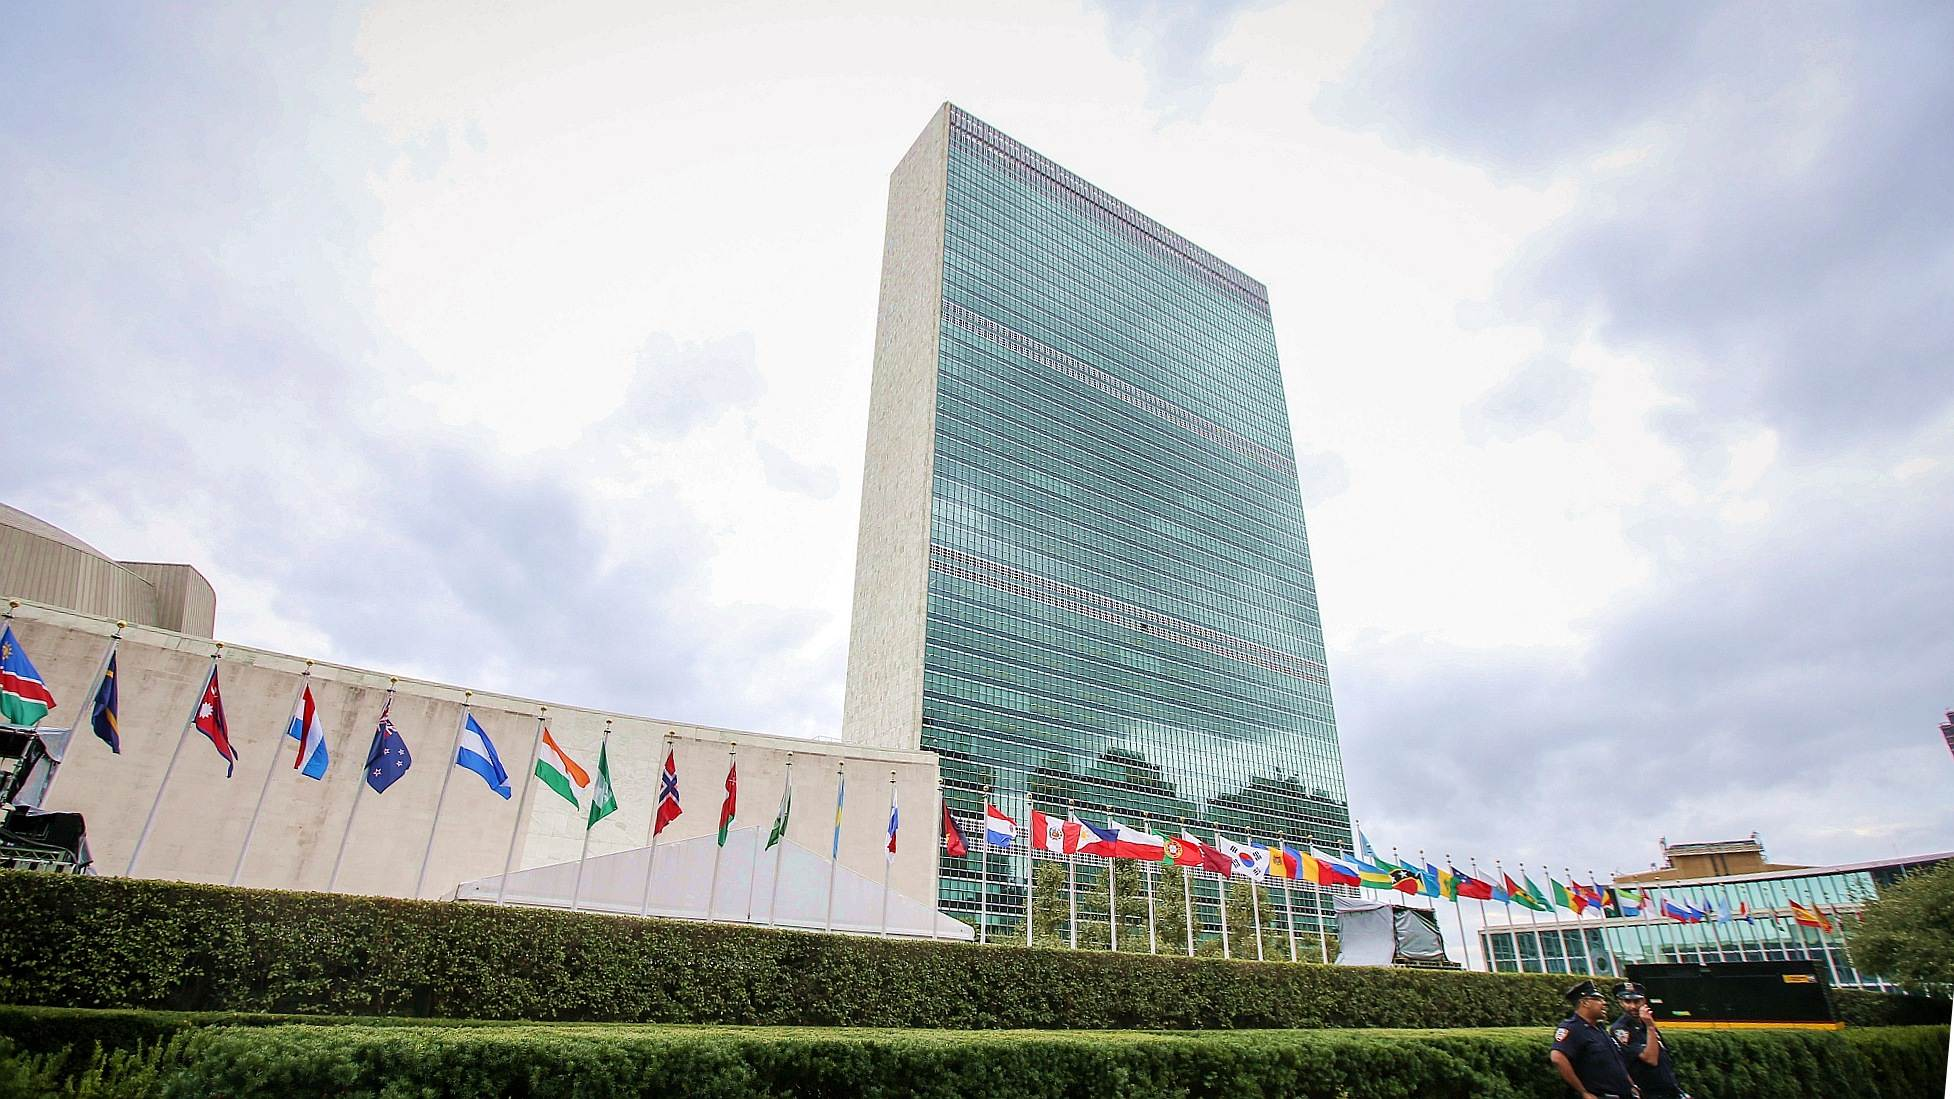 Multilateralism is essential for world progress